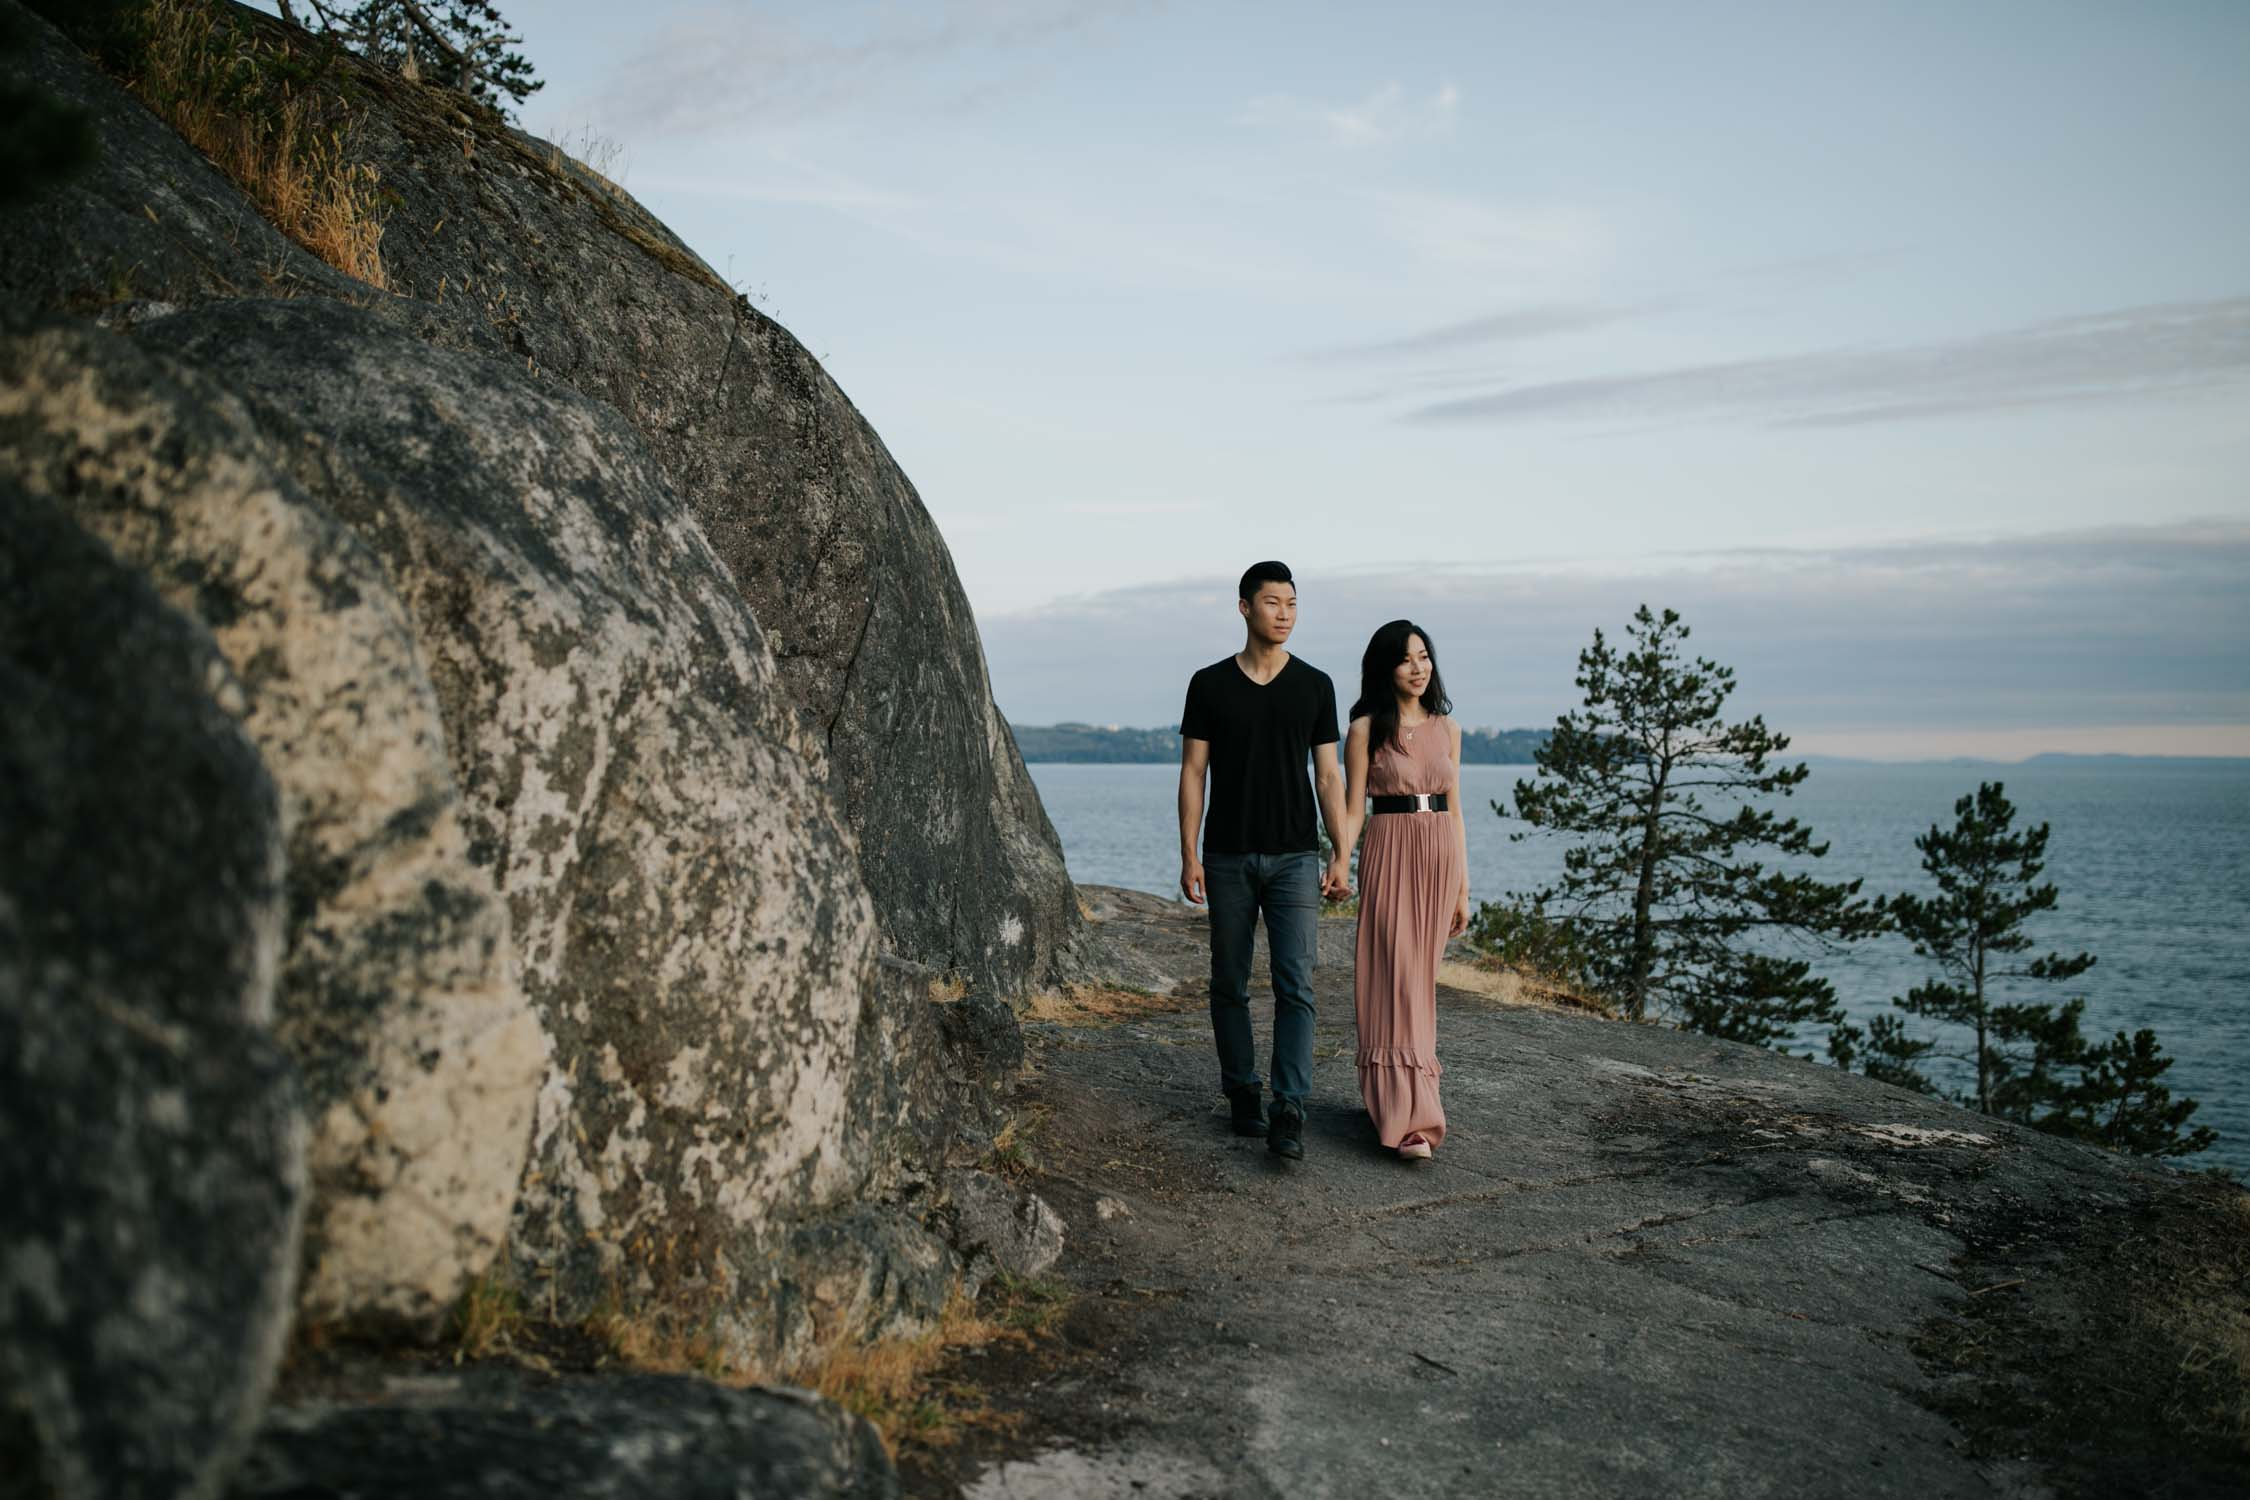 Candid and natural engagement shoot photo of couple walking on rocks in Lighthouse Park with ocean and forest views